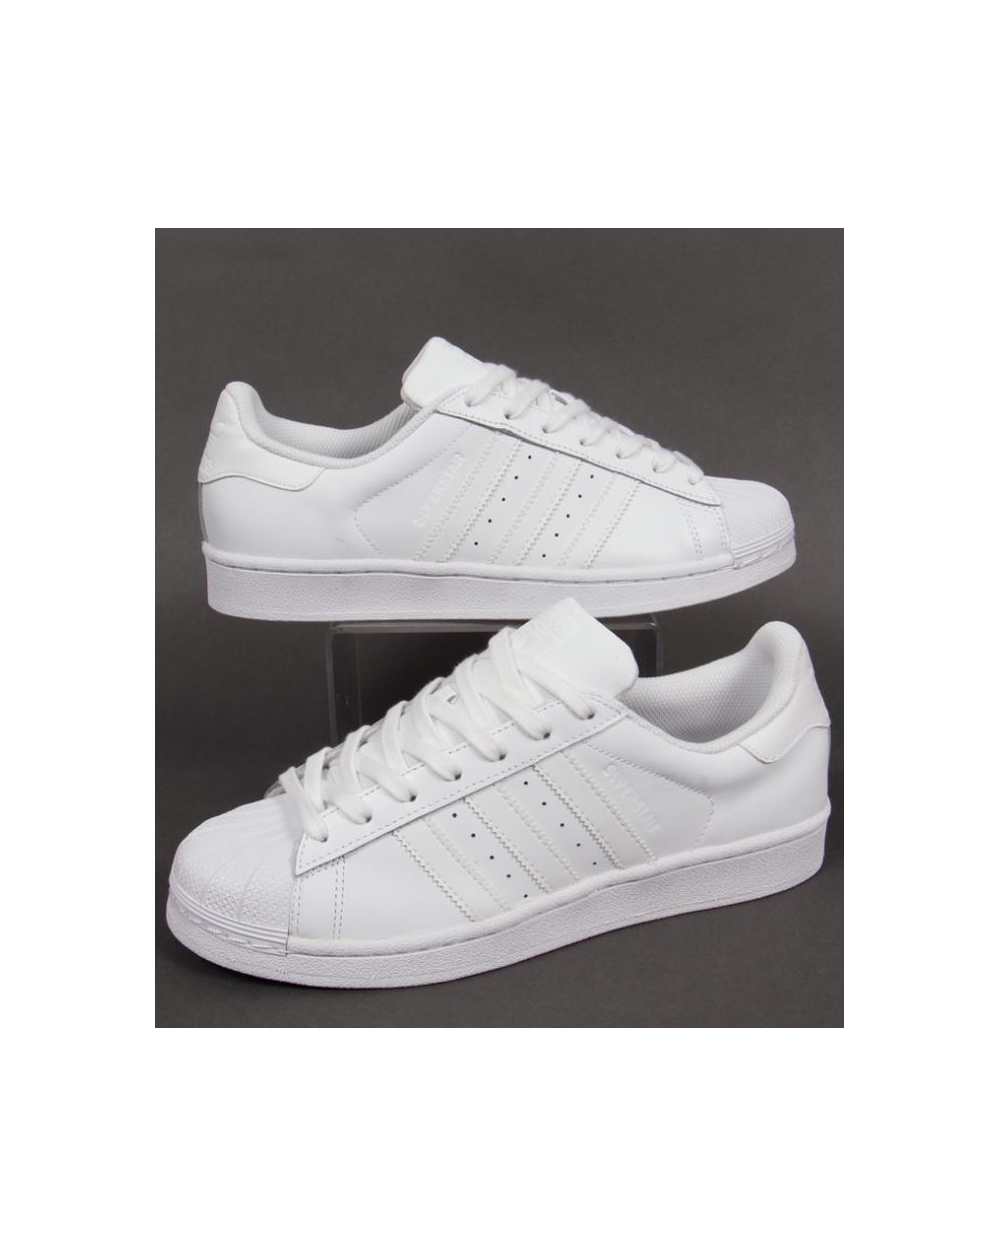 reputable site 2eb14 68201 adidas Trainers Adidas Superstar Foundation Trainers White white